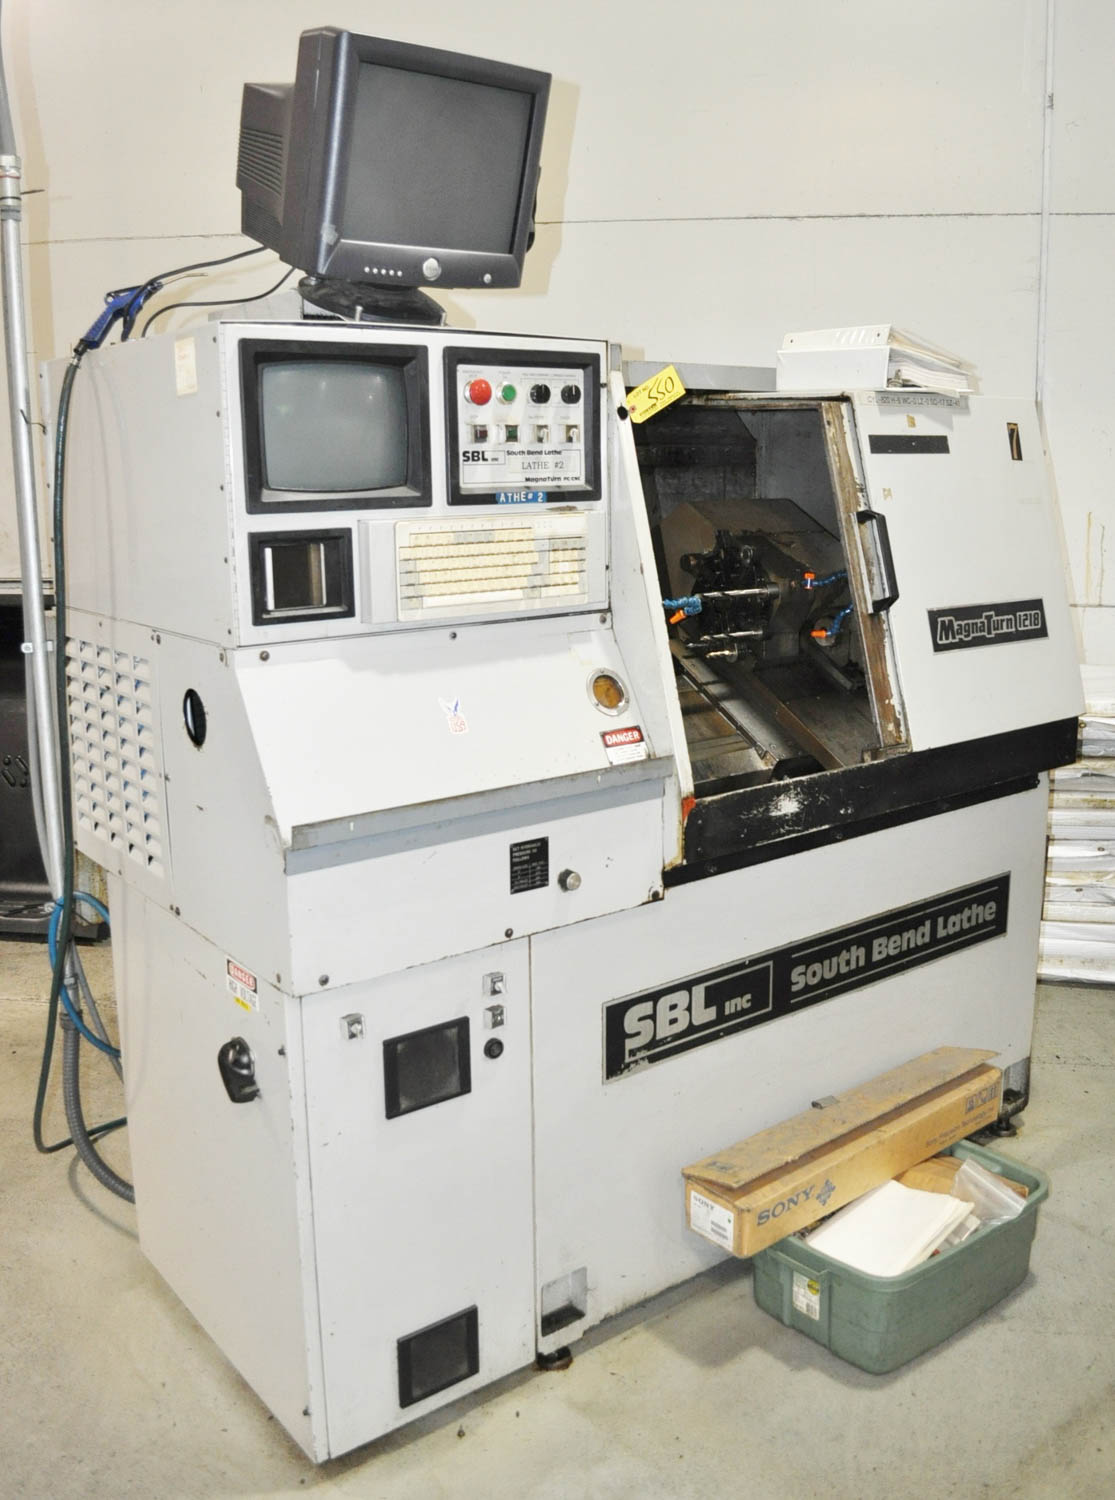 SOUTHBEND ''MAGNATURN 1218'' CNC LATHE, WITH 75-400 RPM, 1-5